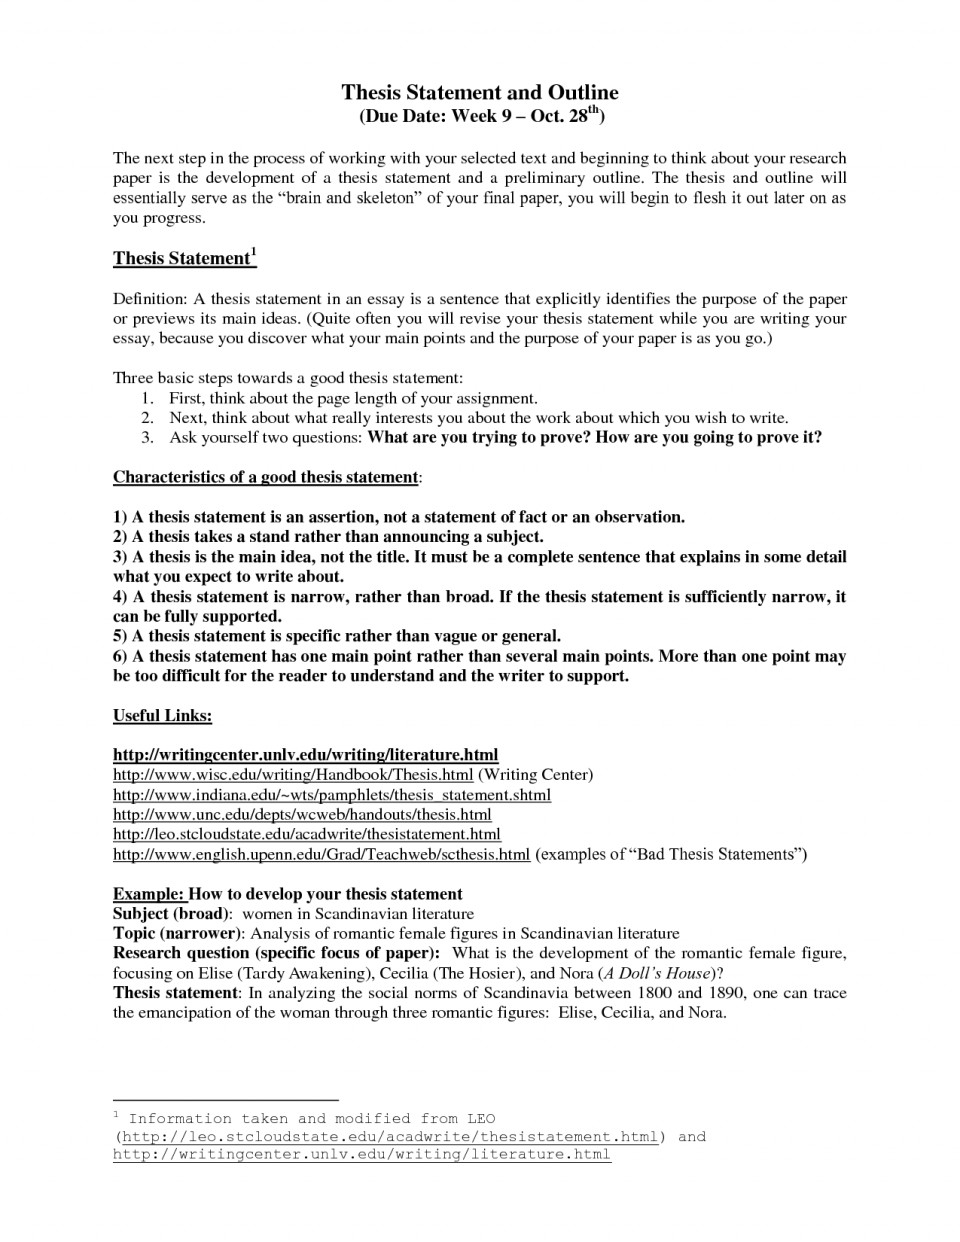 010 Thesis Statement And Outline Template Wx8nmdez An Example Research Stupendous Paper Of Introduction Writing A Pdf Proposal In Mla Format 960